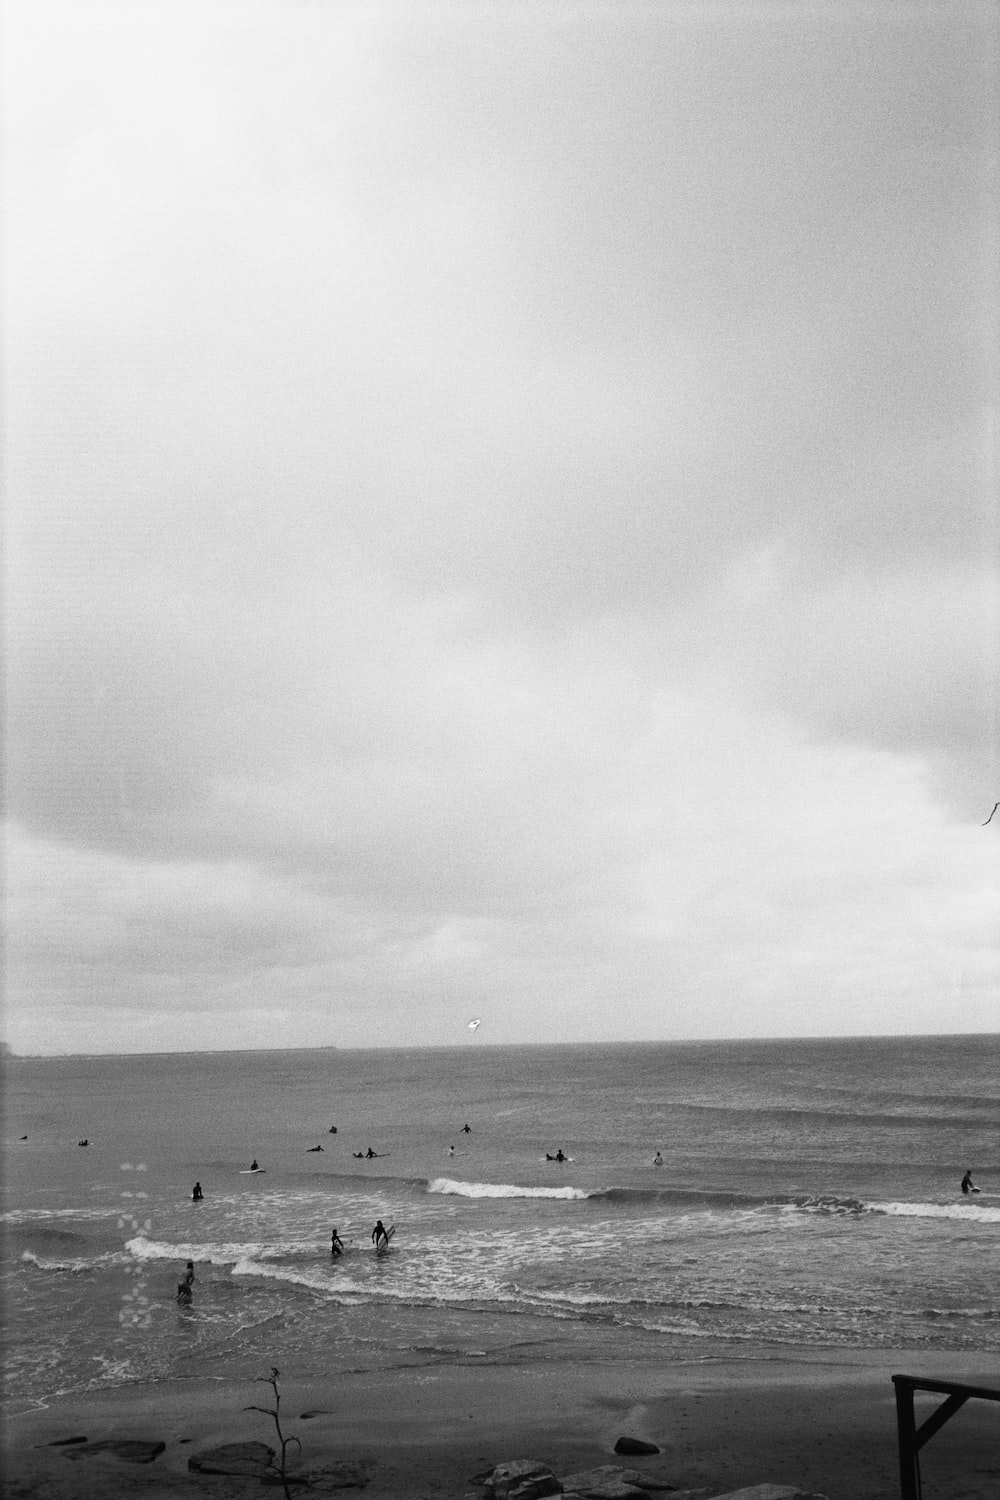 grayscale photo of people on beach